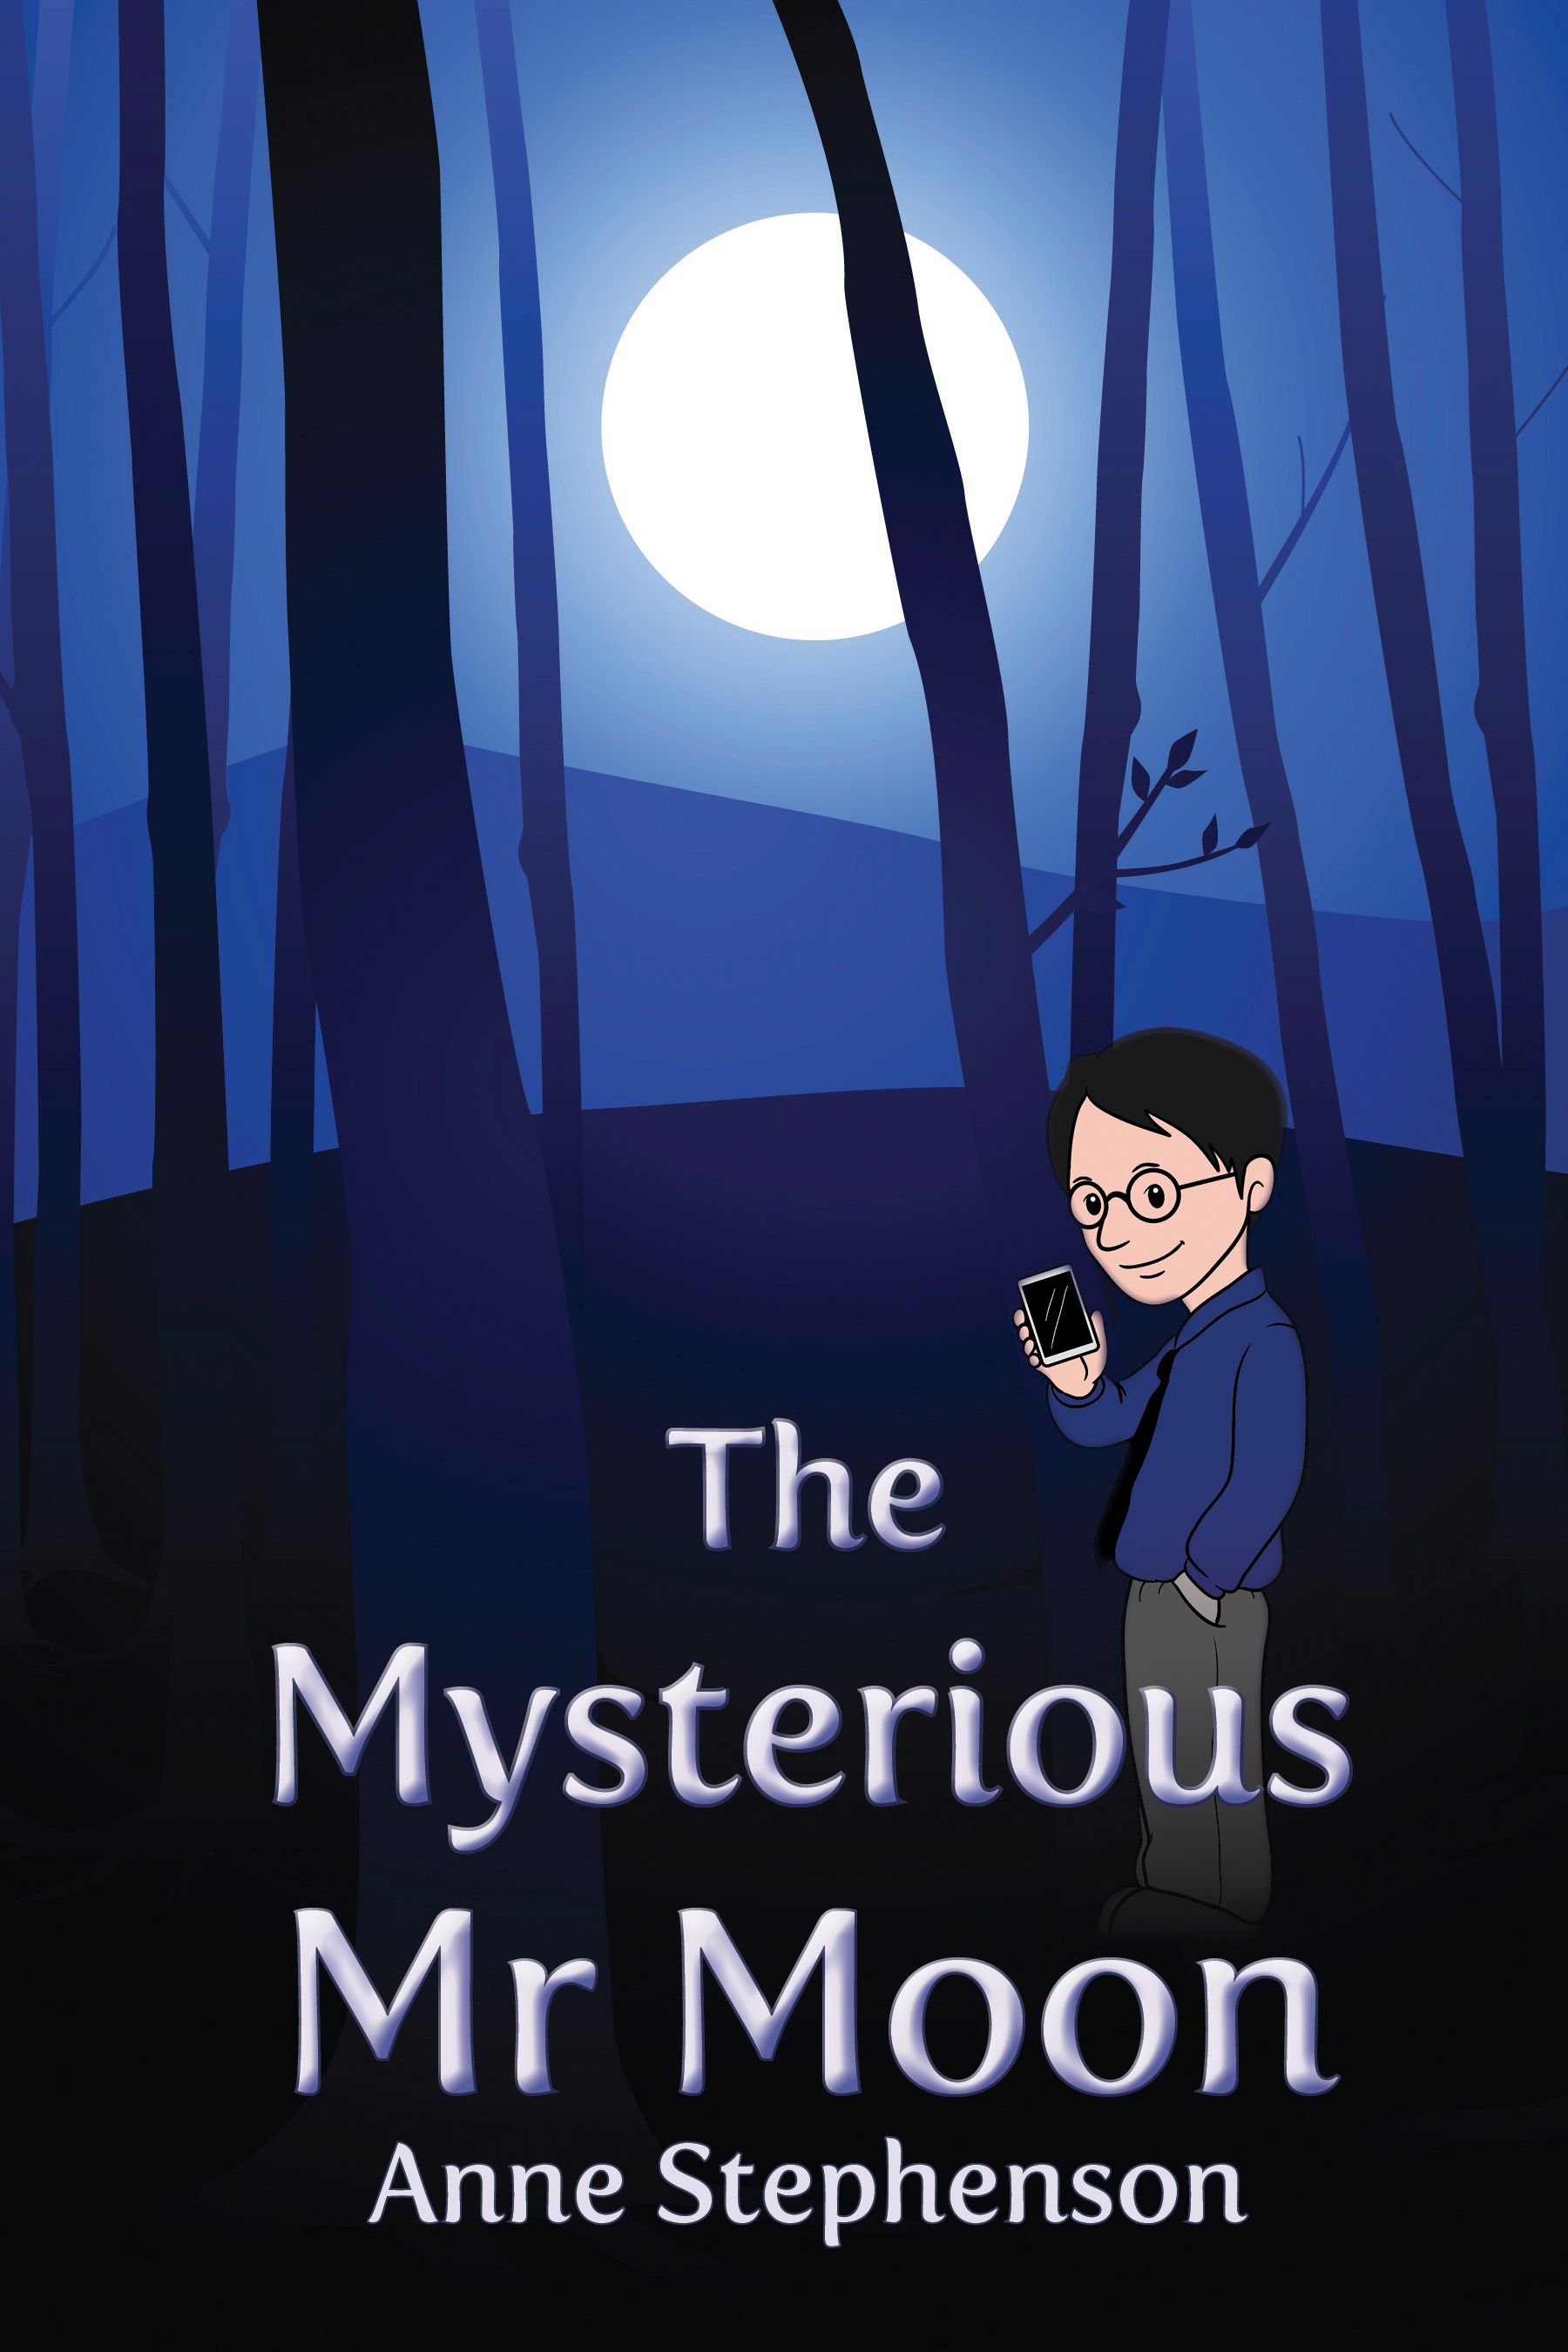 The Mysterious Mr Moon by Anne Stephenson